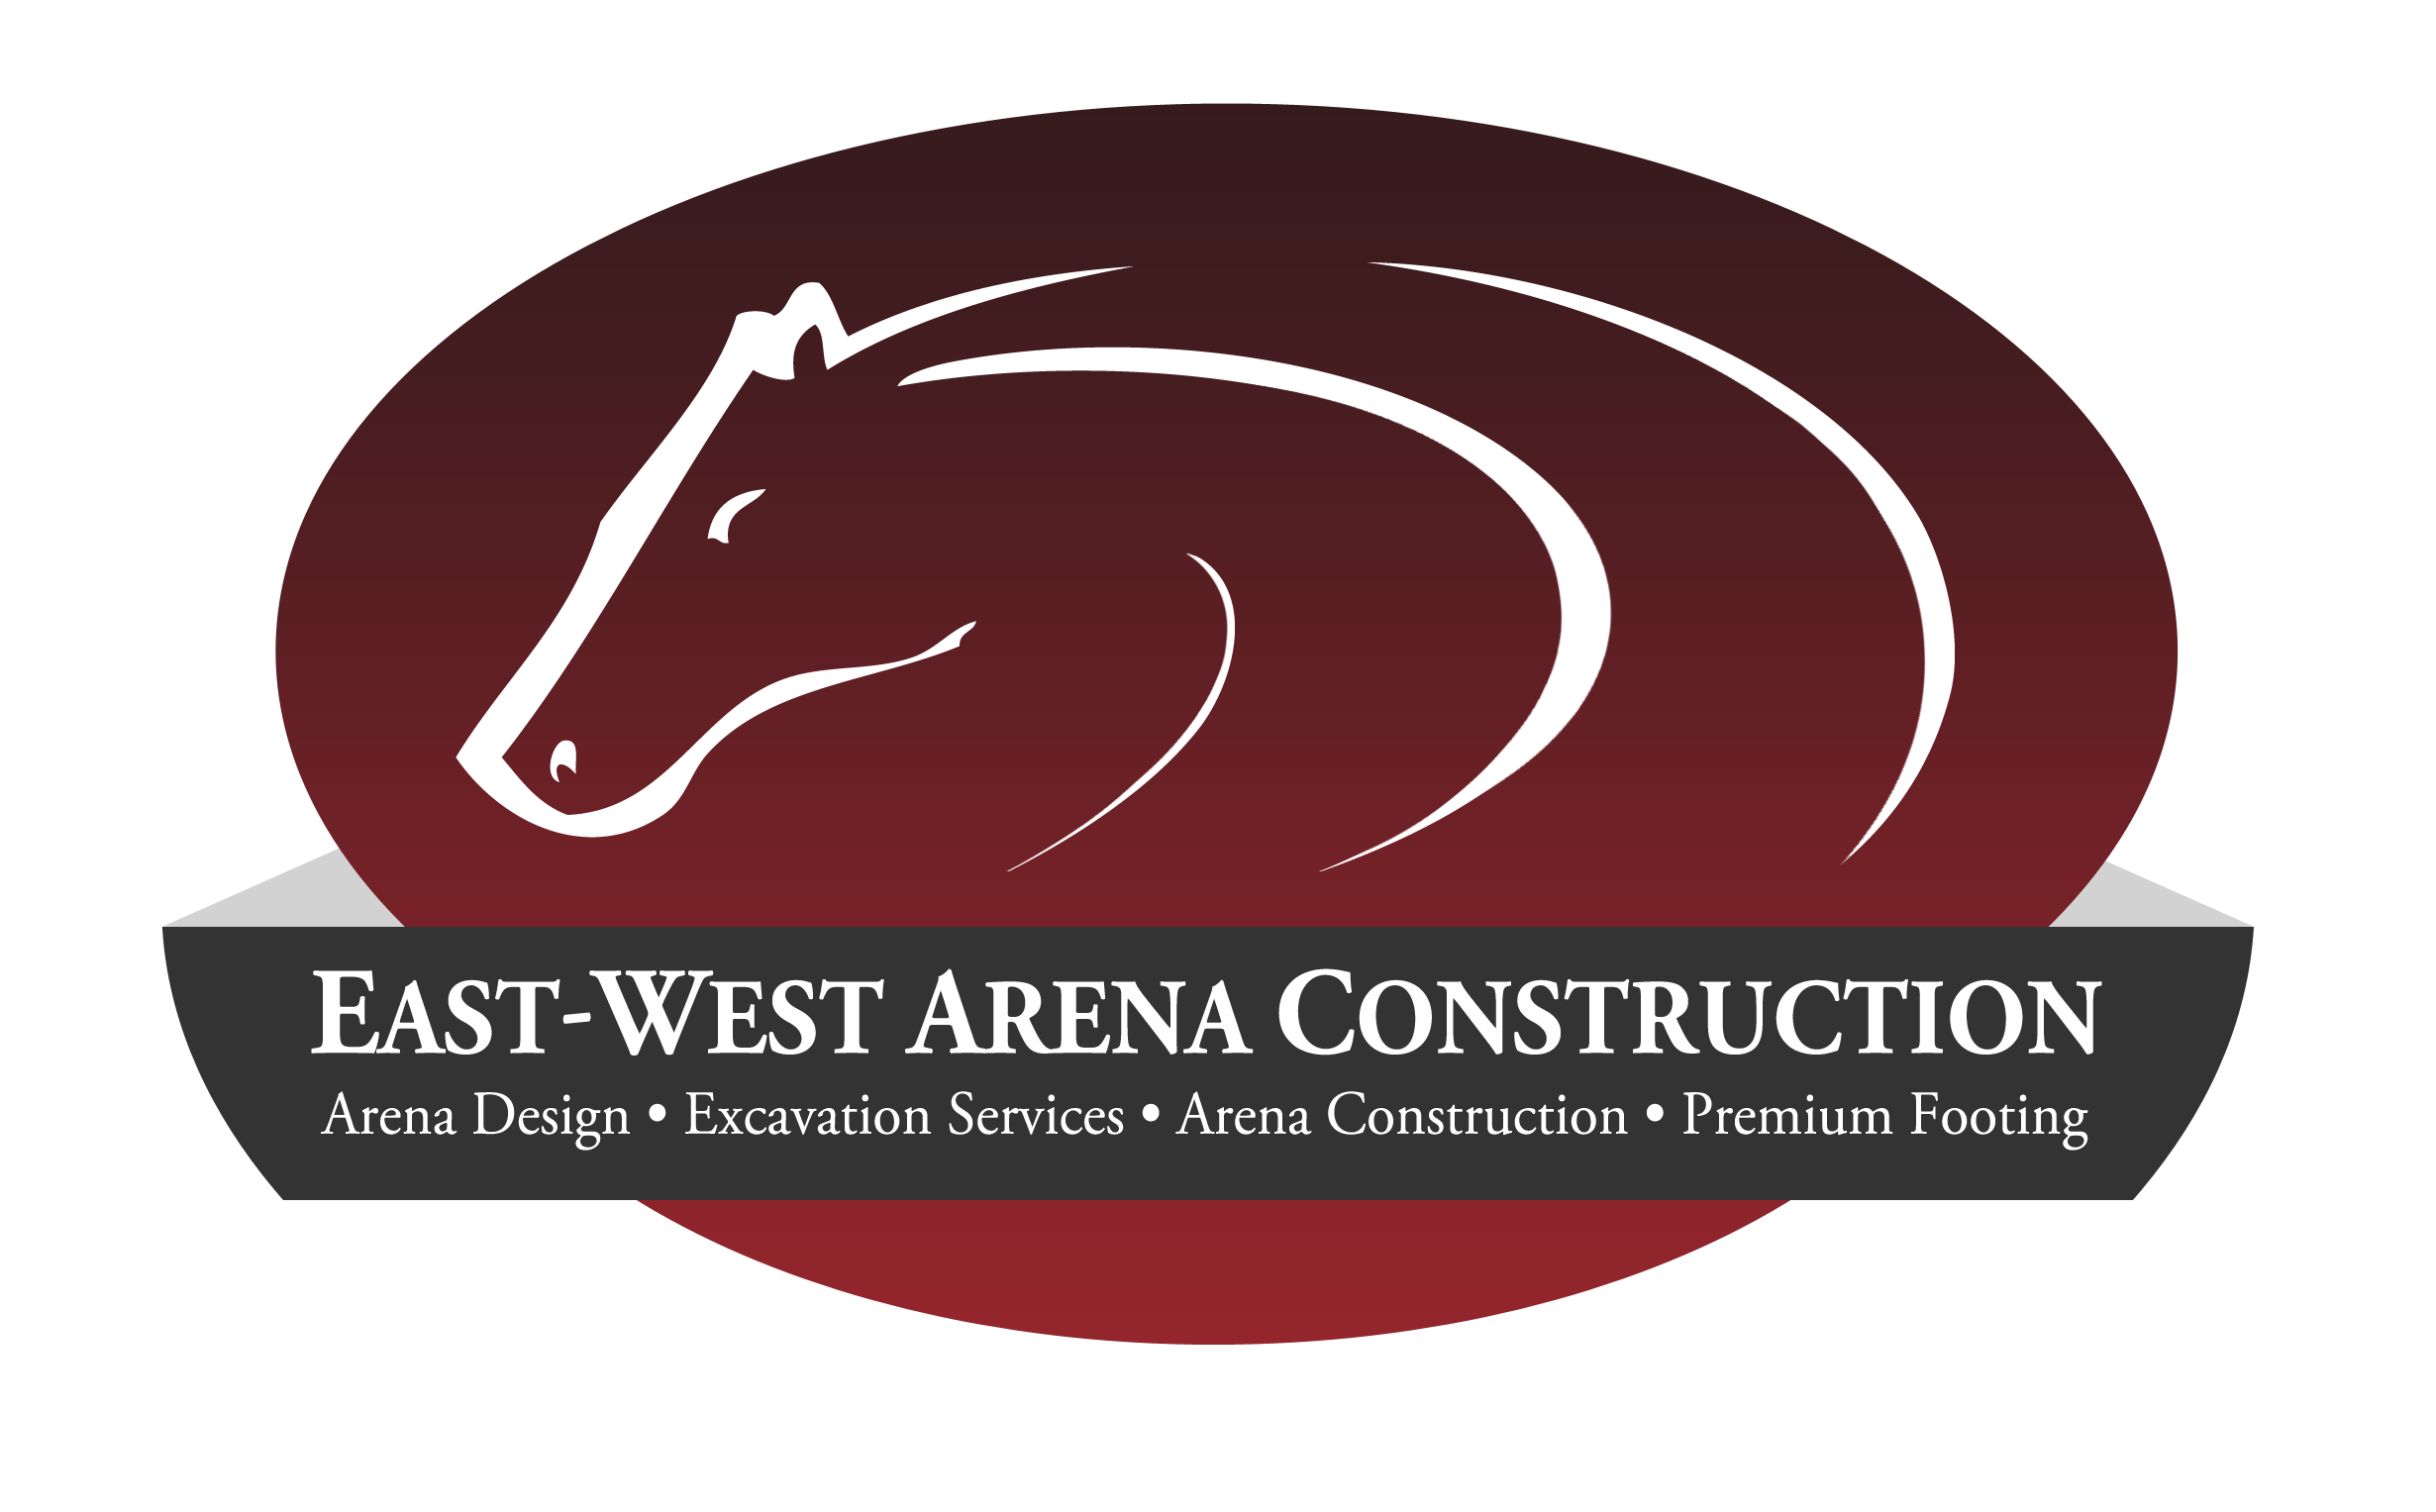 East-West Arena Construction